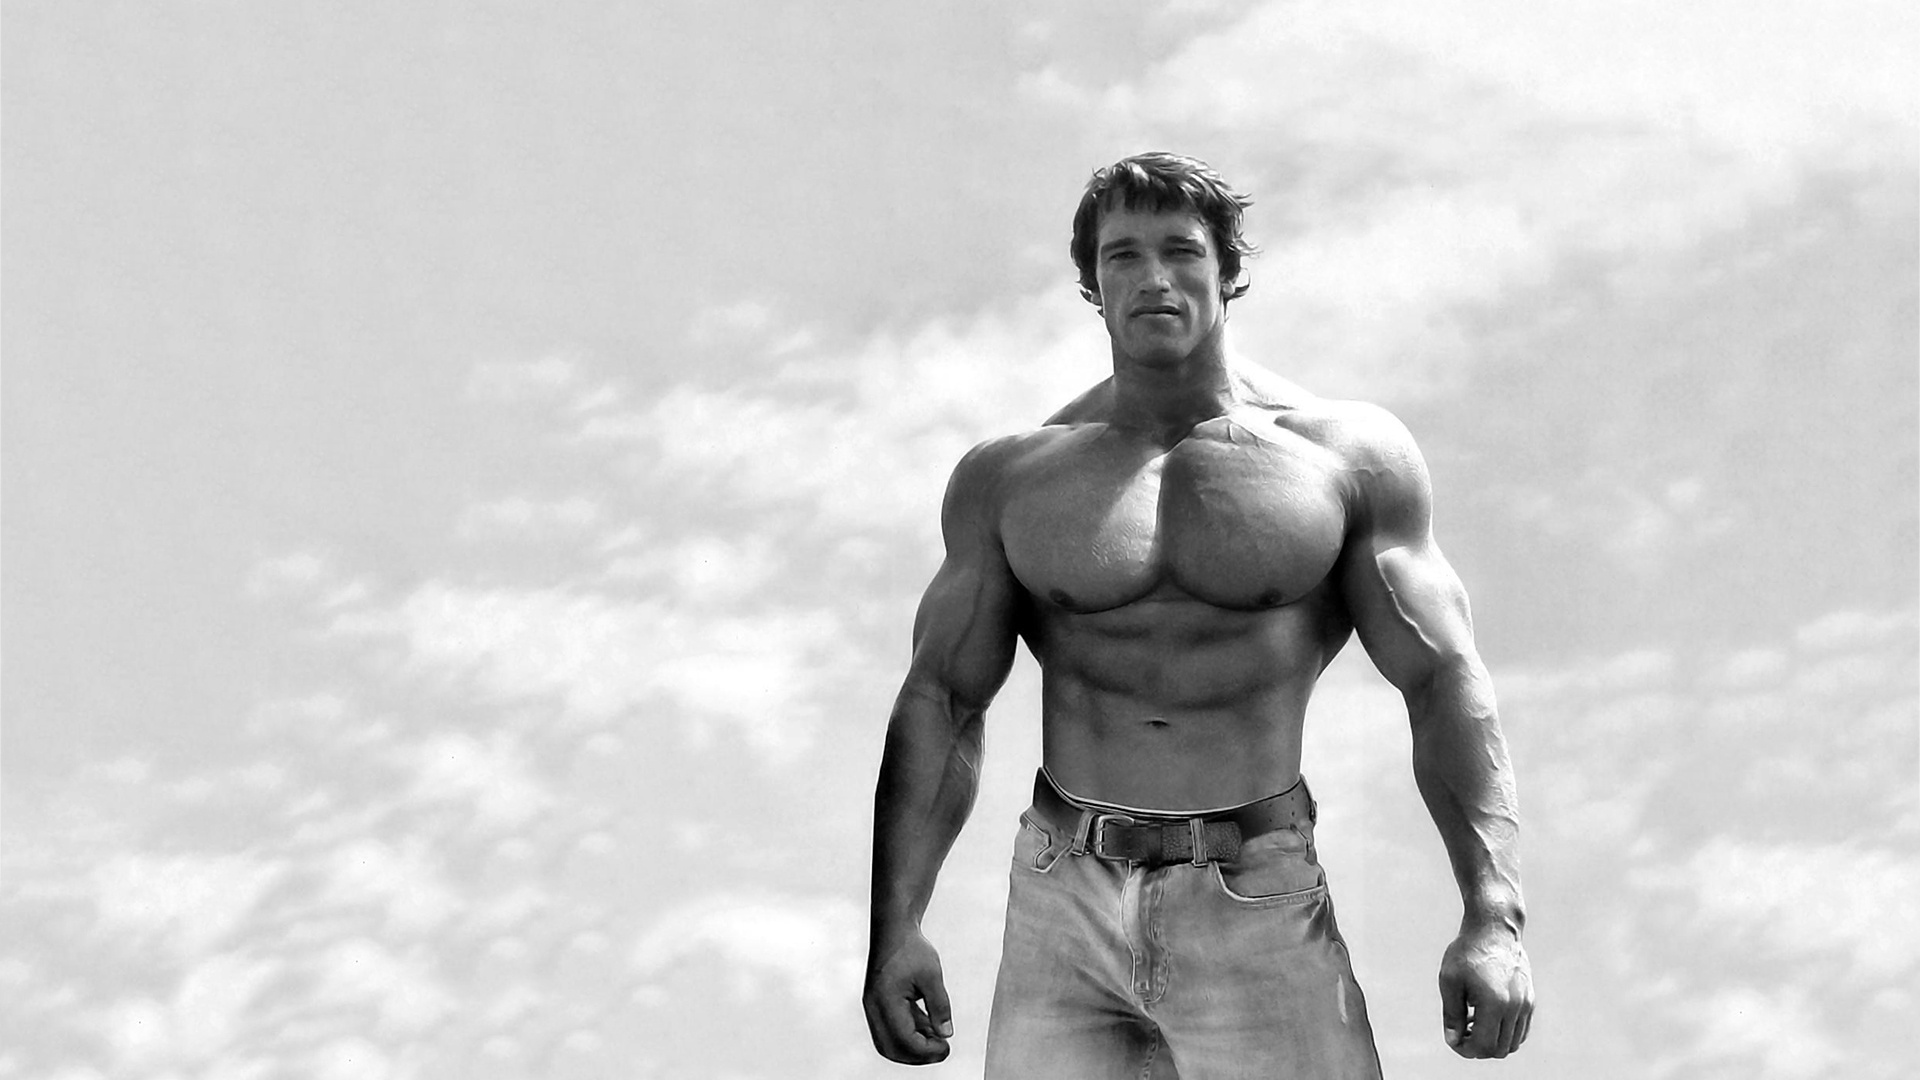 What Steroids Cycles Did Bodybuilders Use Back In Day To Build Muscle Mass?